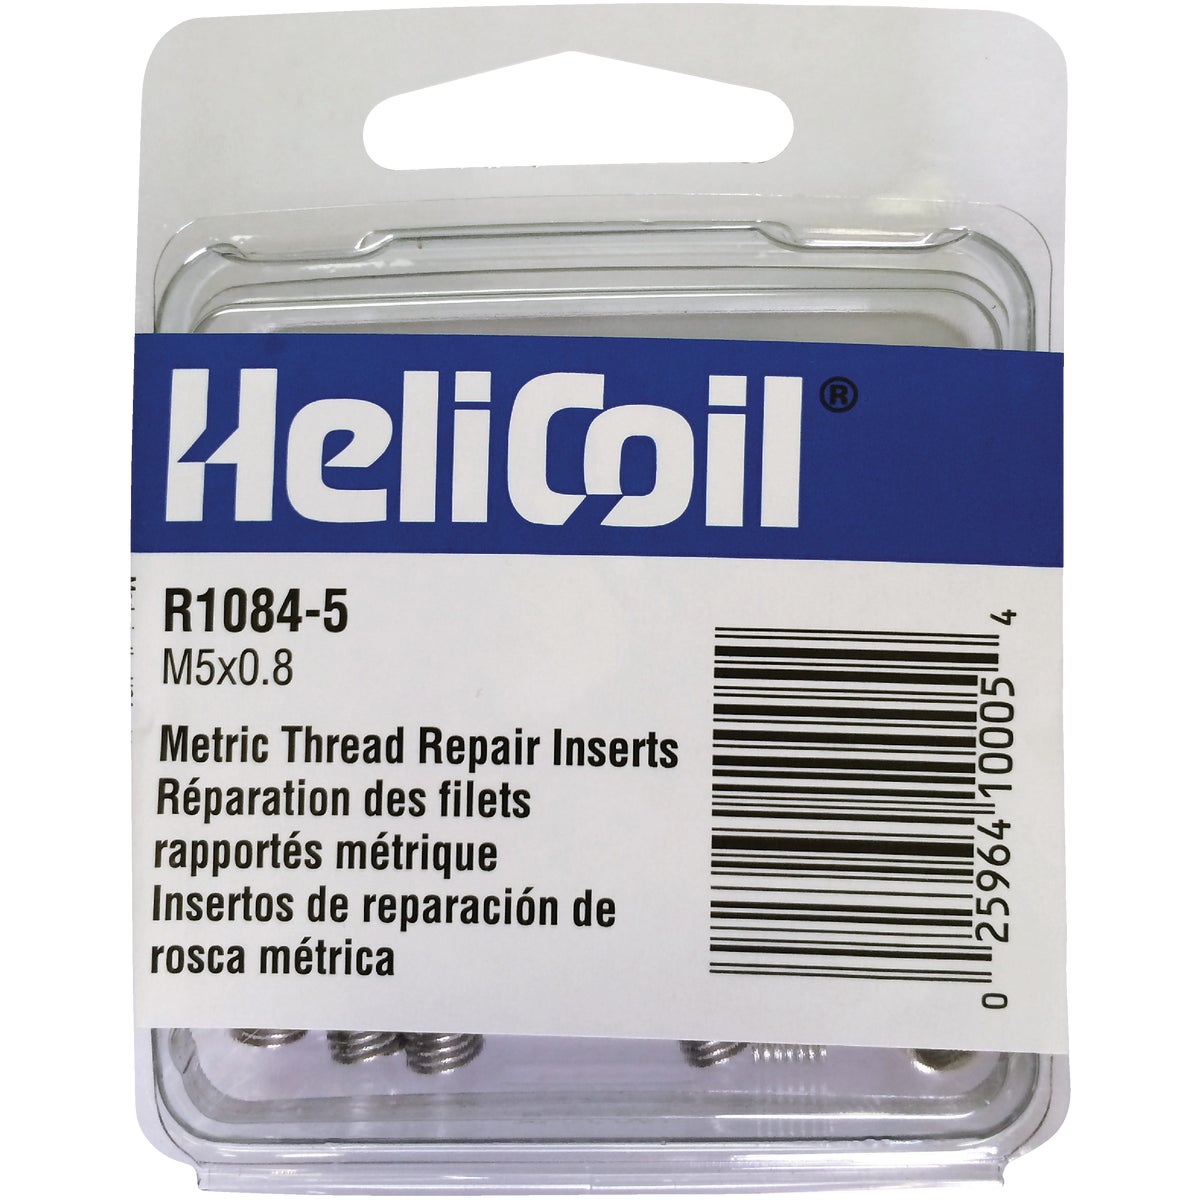 M5X0.8 THREAD REPAIR - R1084-5 by Helicoil Div Emhart